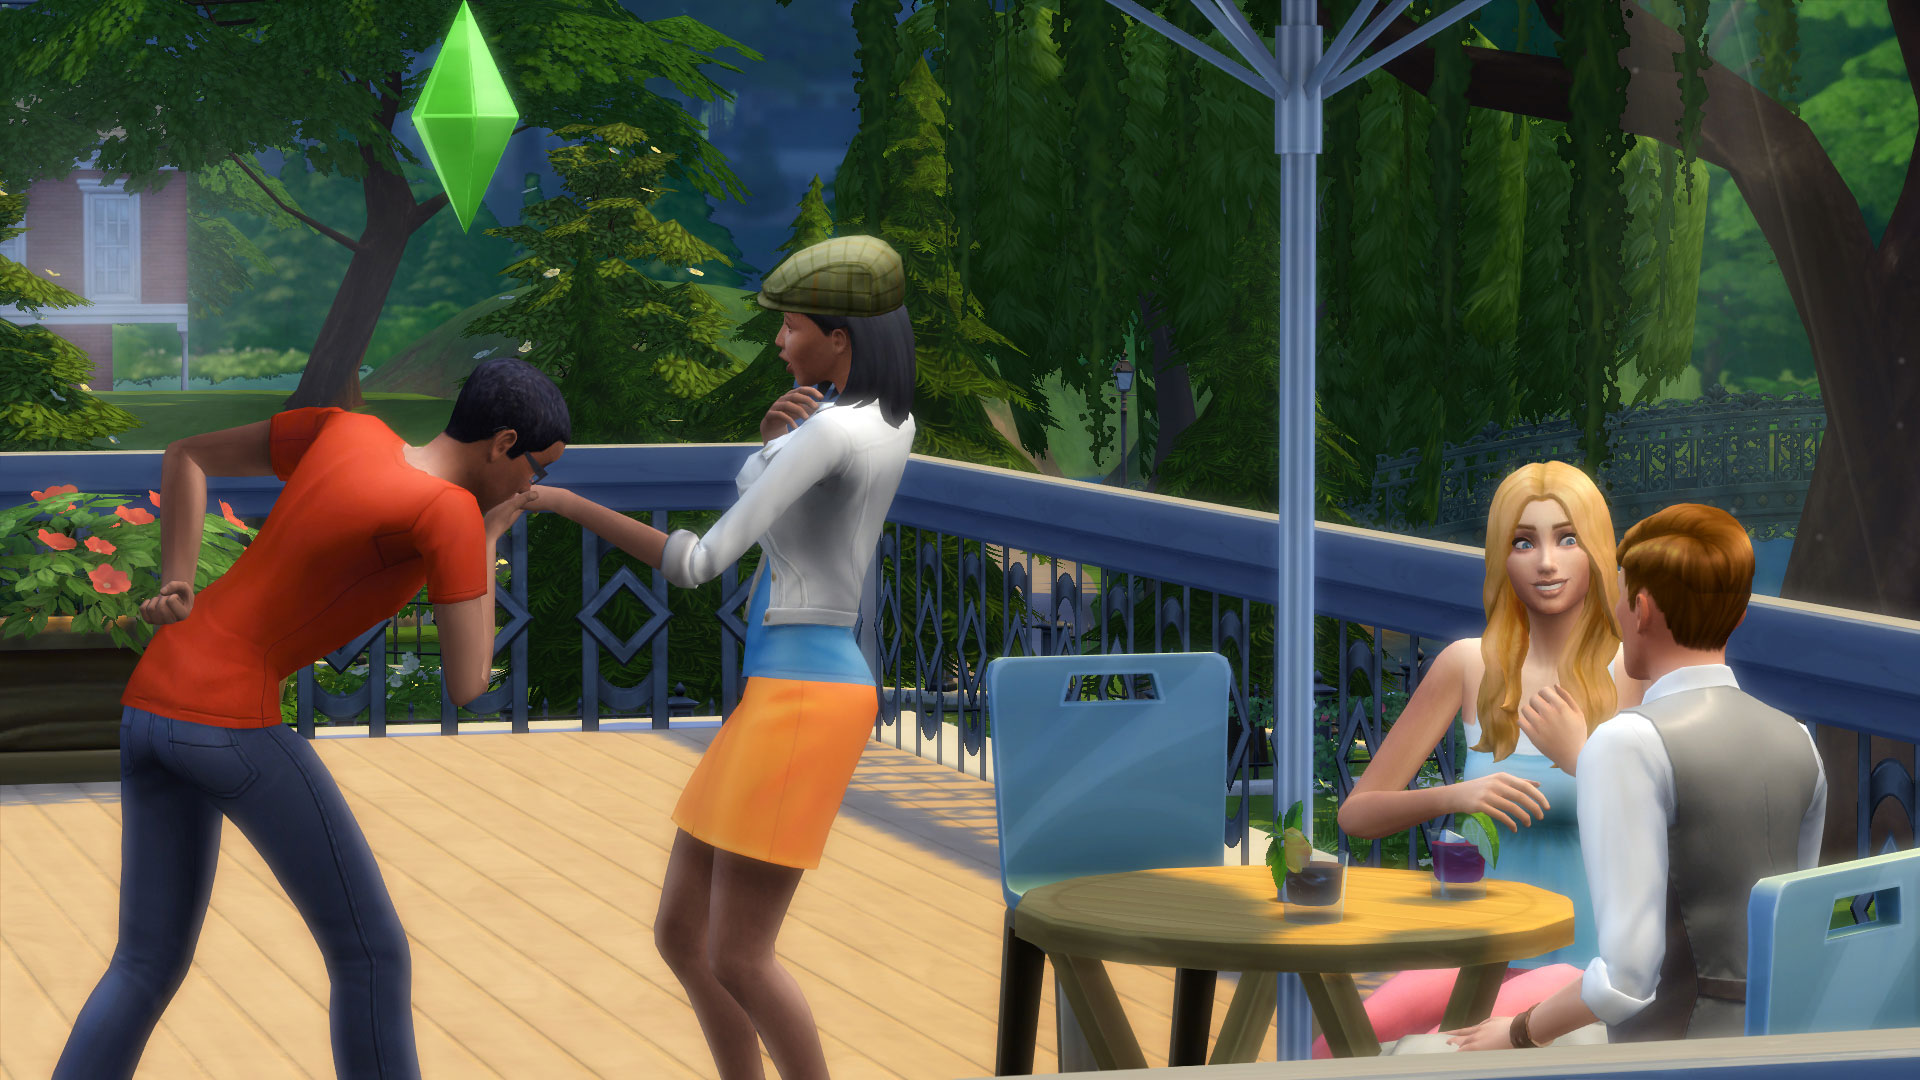 The Sims 4 is heading to Mac in February